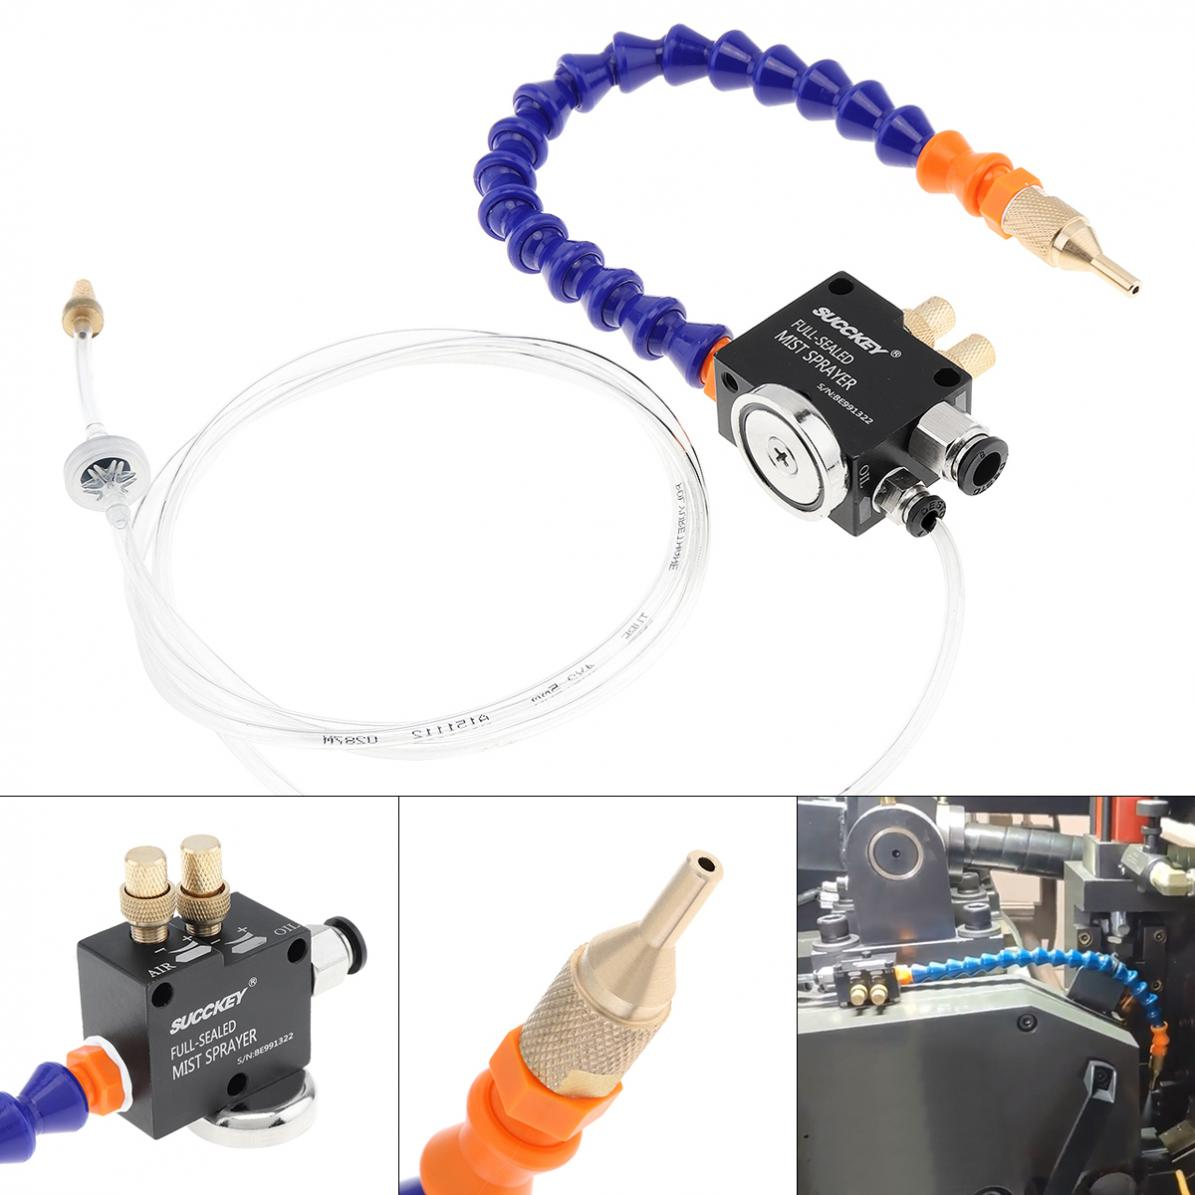 30cm Mist Coolant Lubrication Spray System With Adsorbable Magnetic Base And Fully Sealed Plastic Metal Cutting Cooling Machine